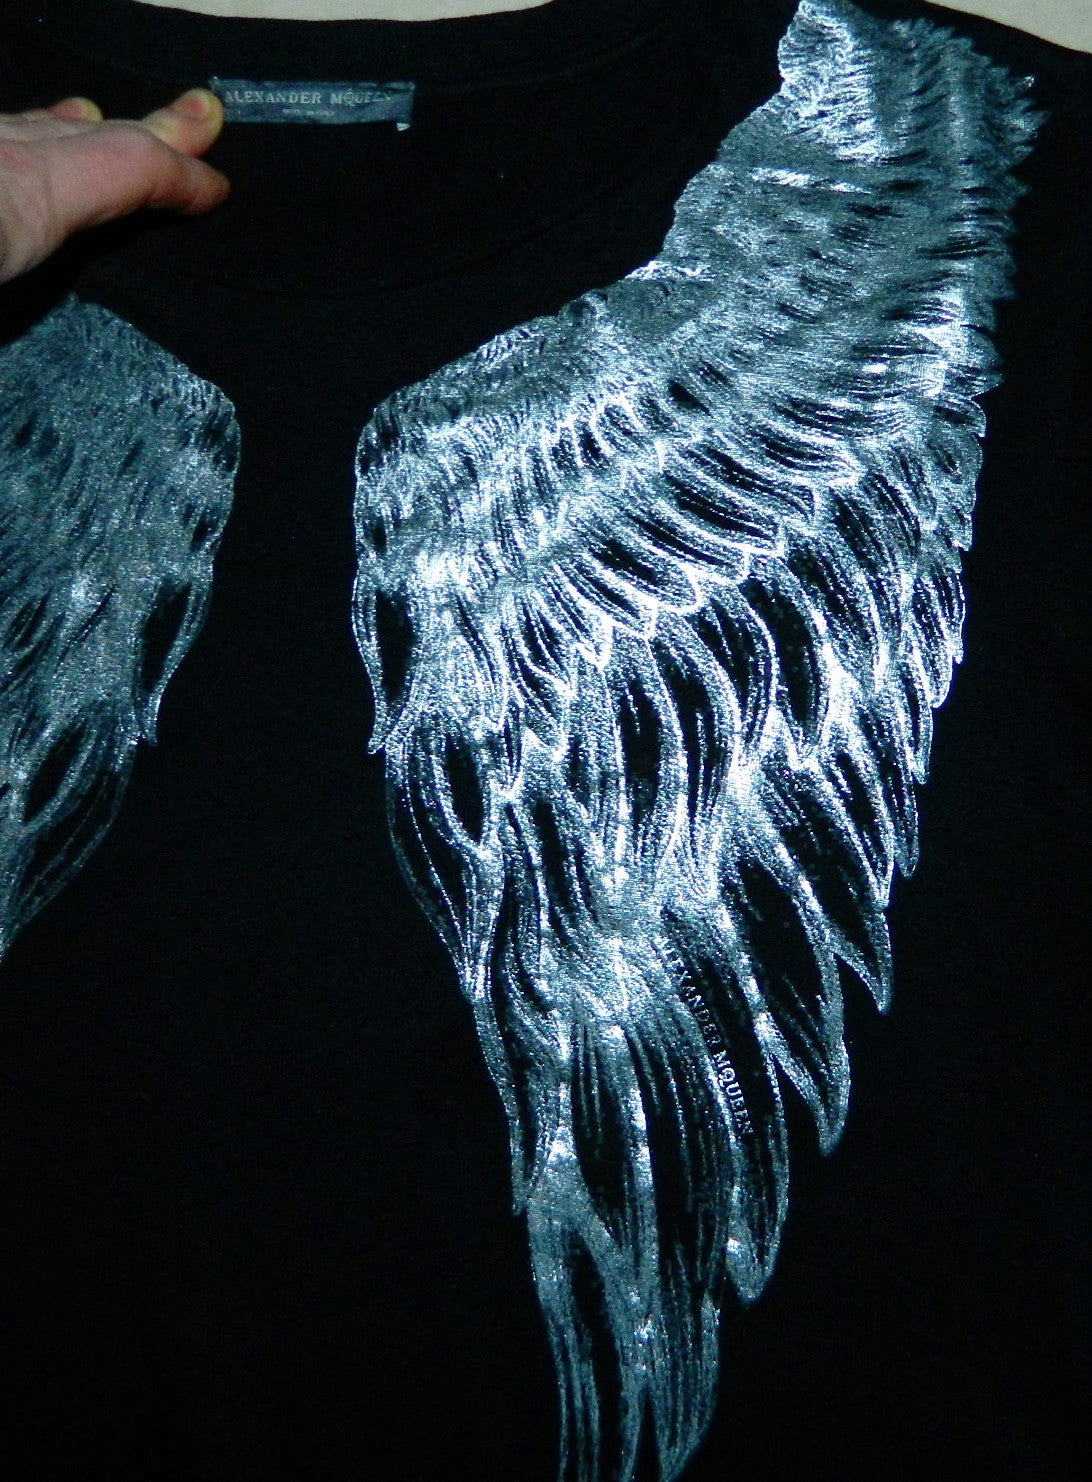 black Alexander McQueen angel wings tee shirt / silver metallic logo top 42/ US M